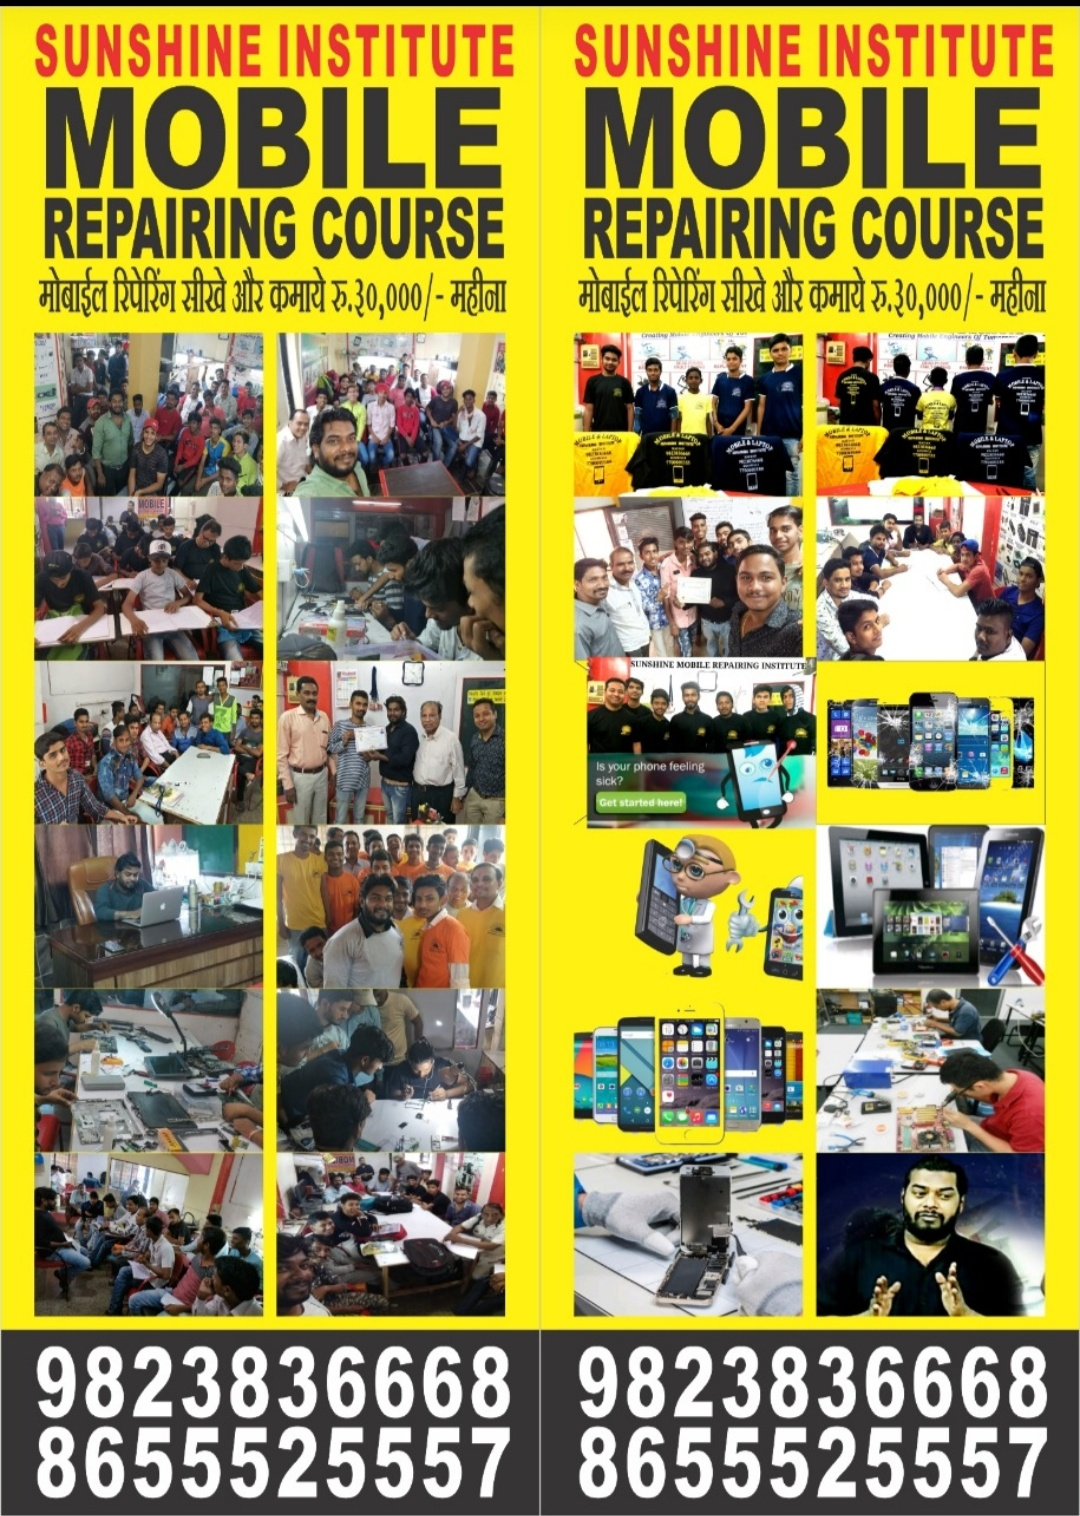 SUNSHINE MOBILE REPAIRING COURSE